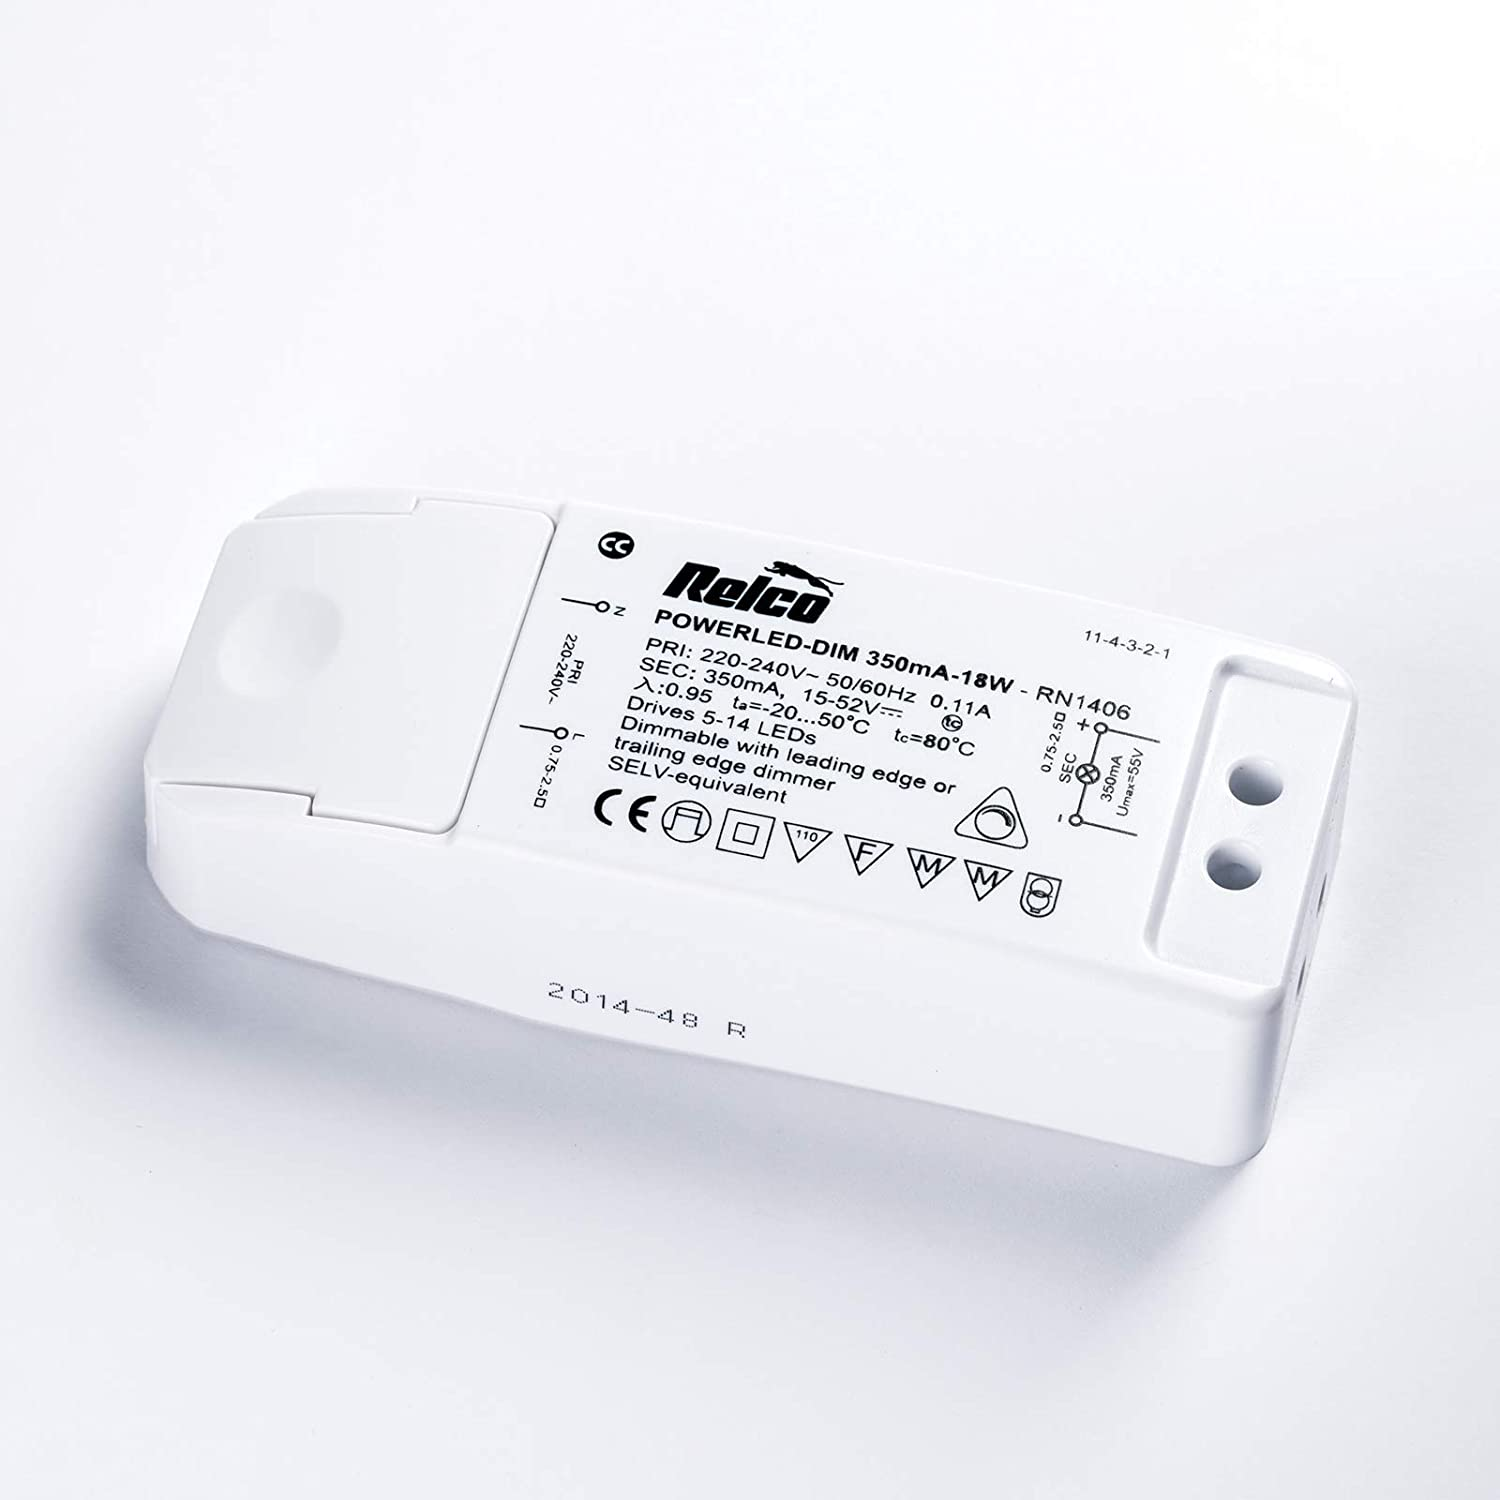 Led Driver 350mA 18W 113*44*28mm 15-52V DIM (RN1406)